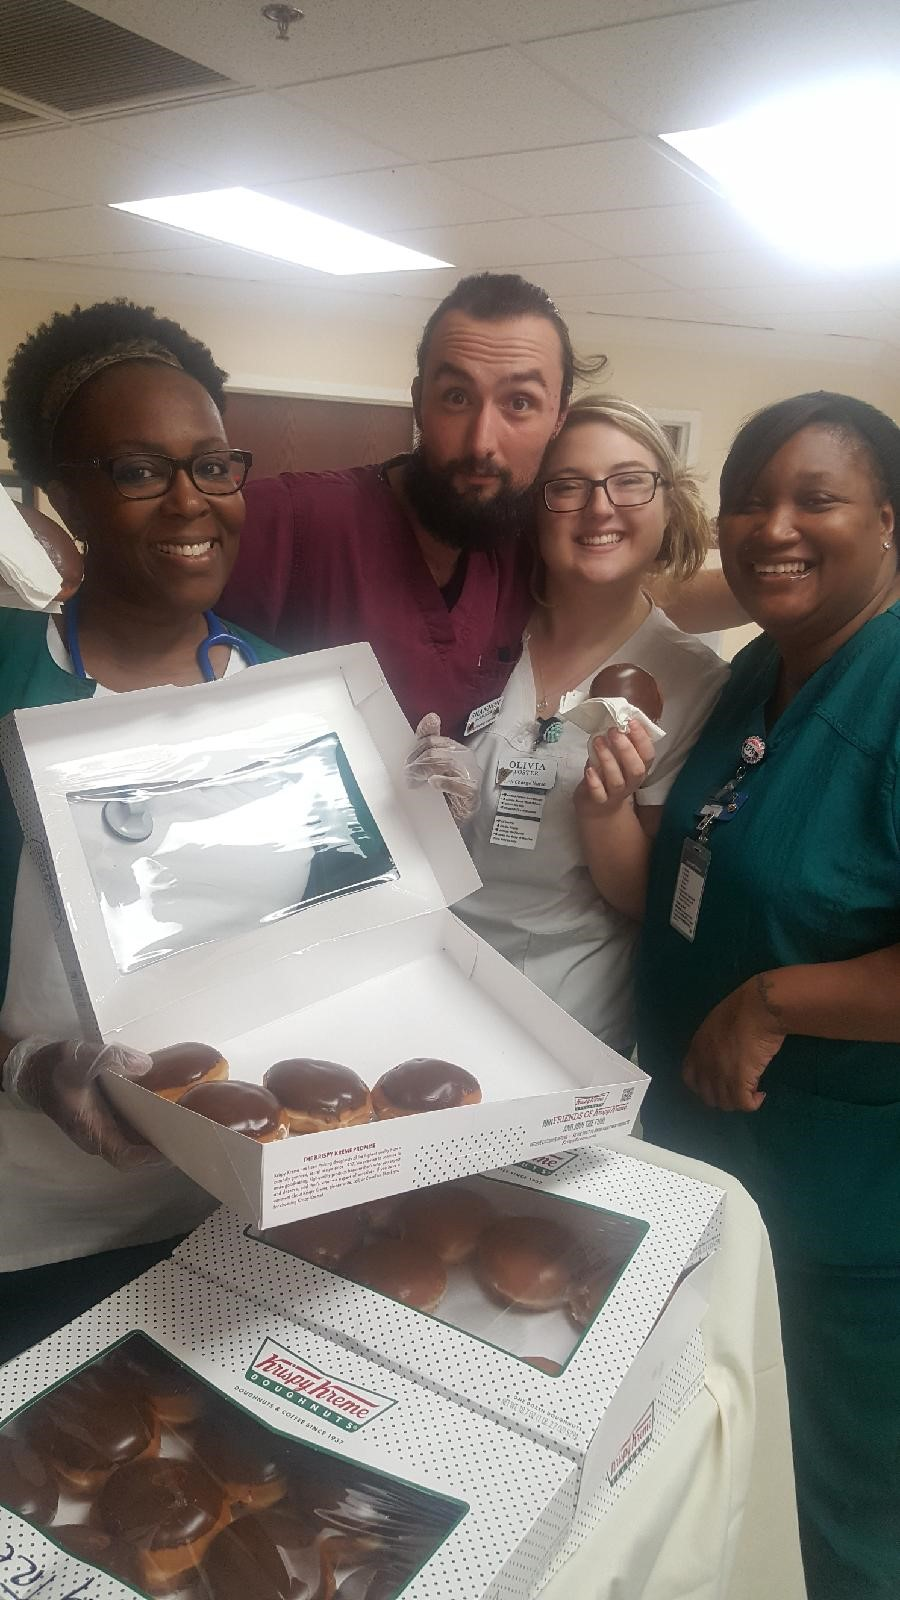 Springtree team celebrating National Cream Filled Donut Day